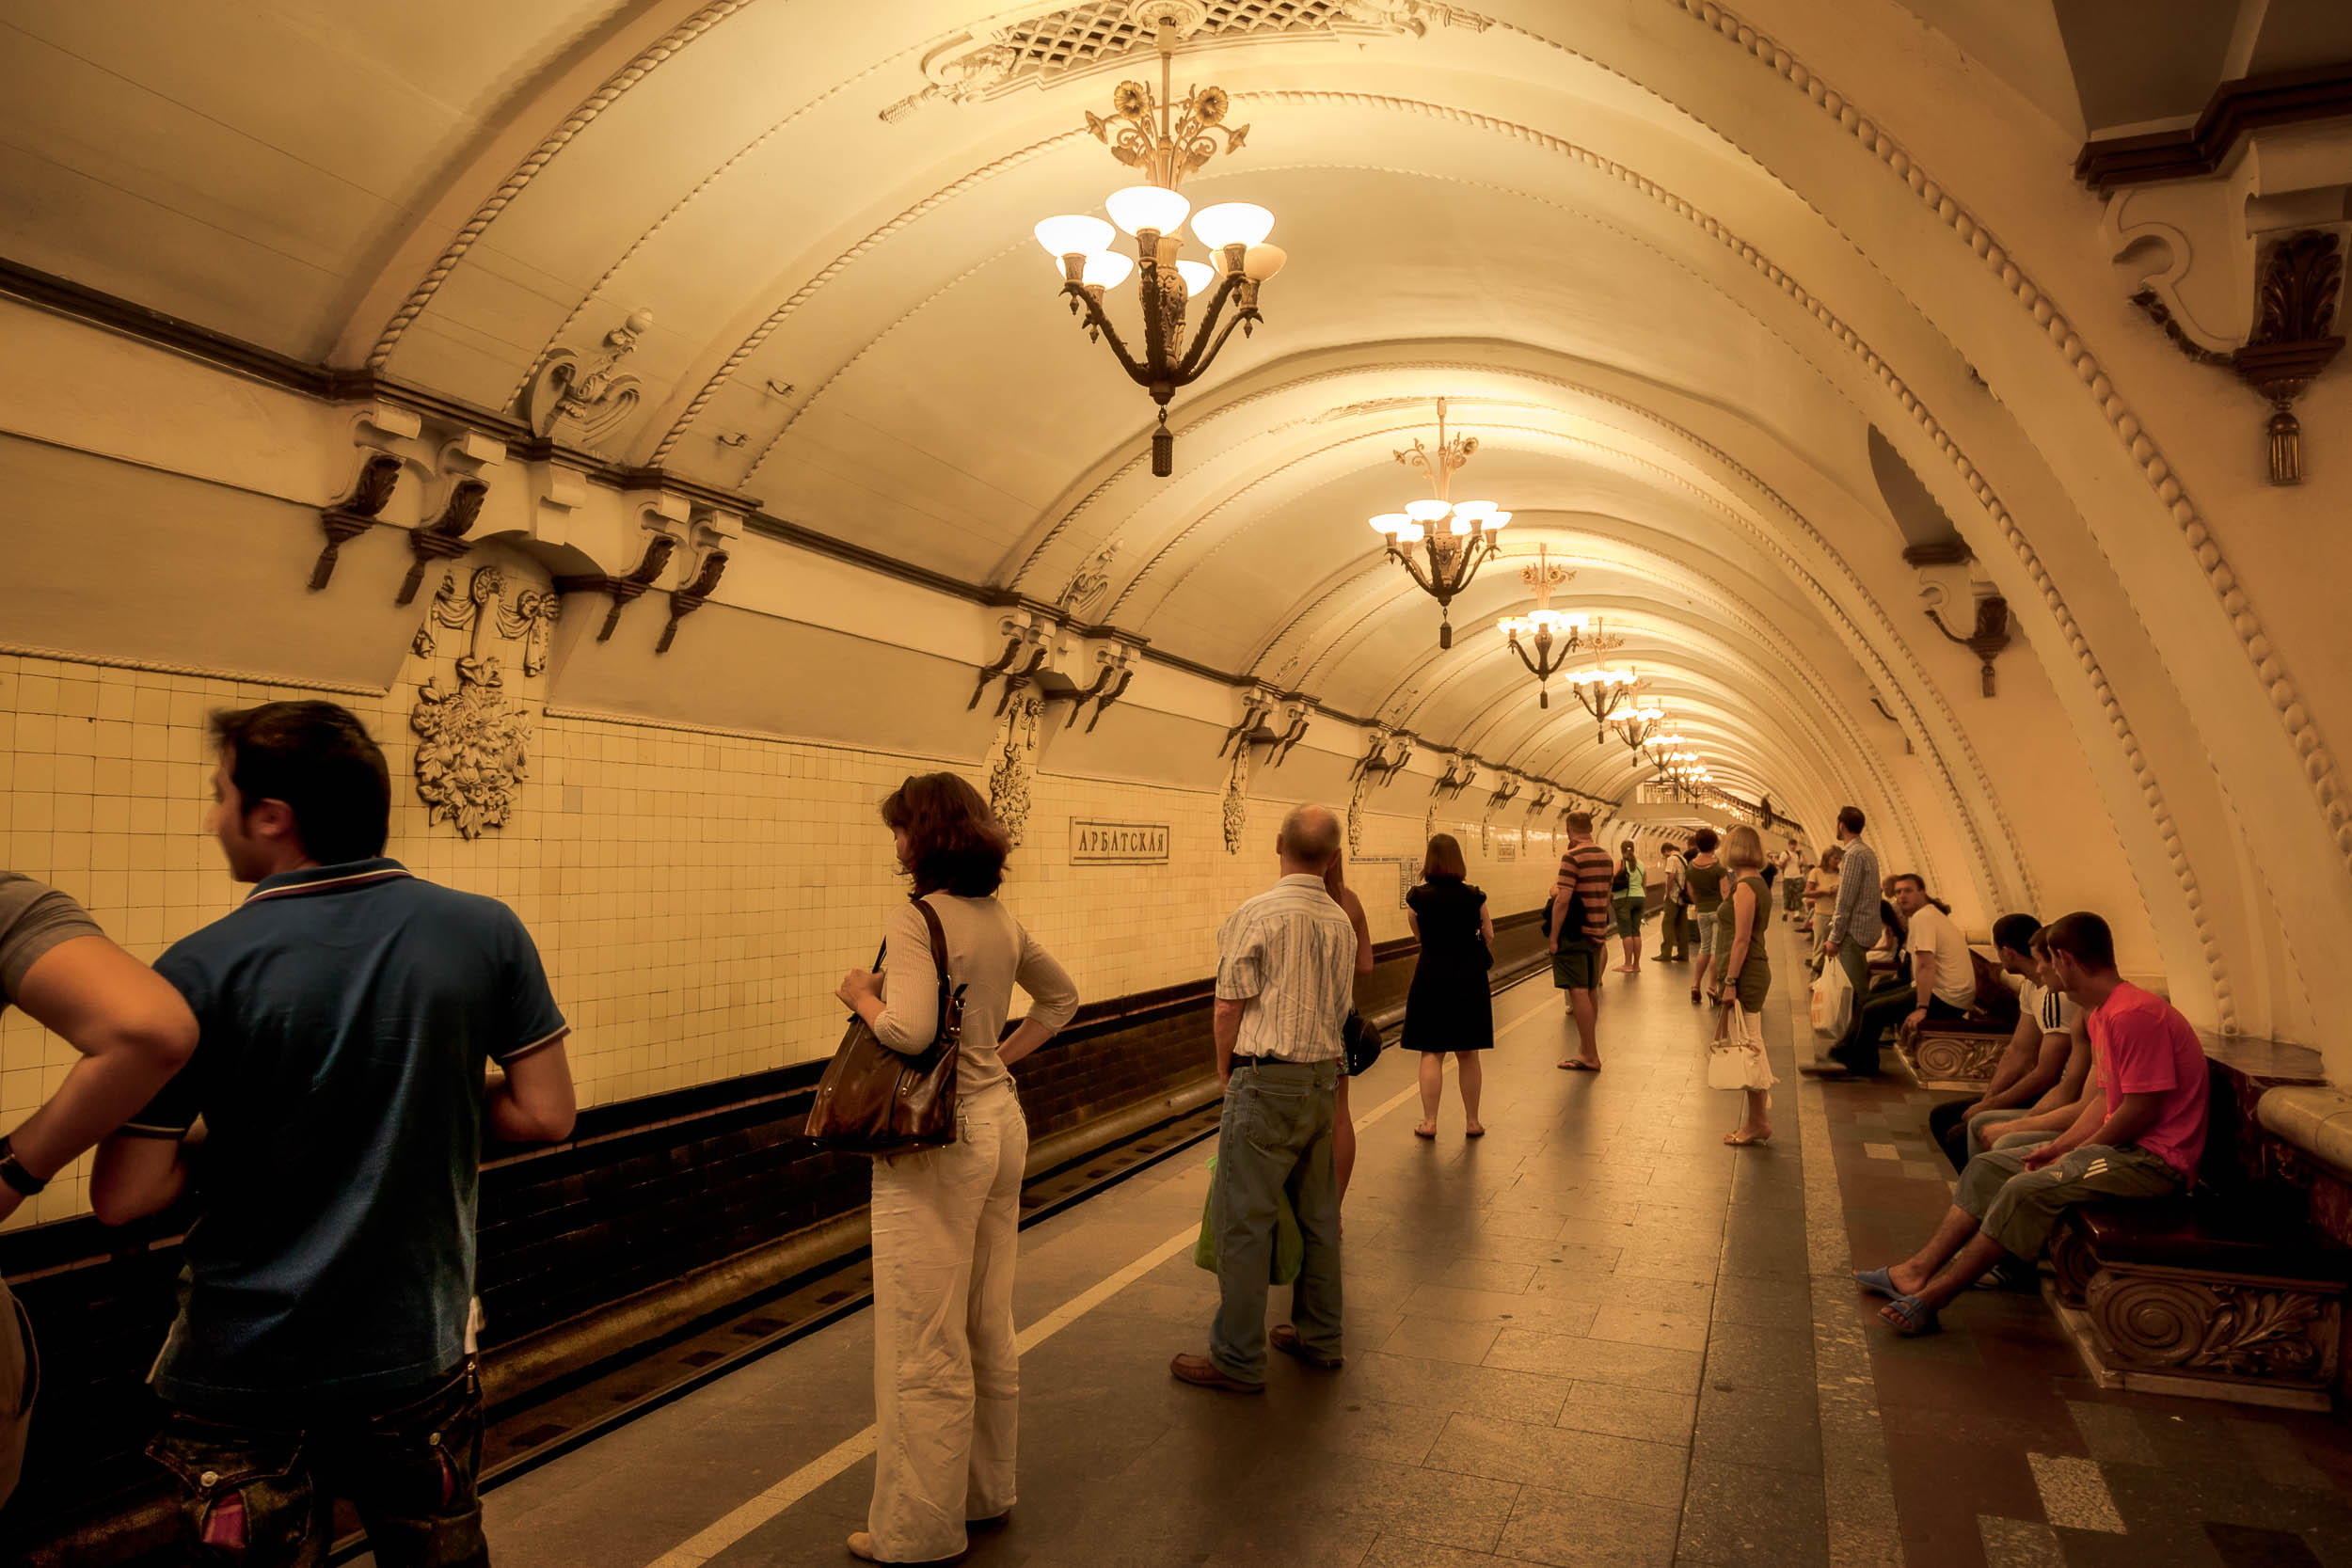 Commuters    waiting on the platform of an    underground railway station    in    Moscow, Russia   .